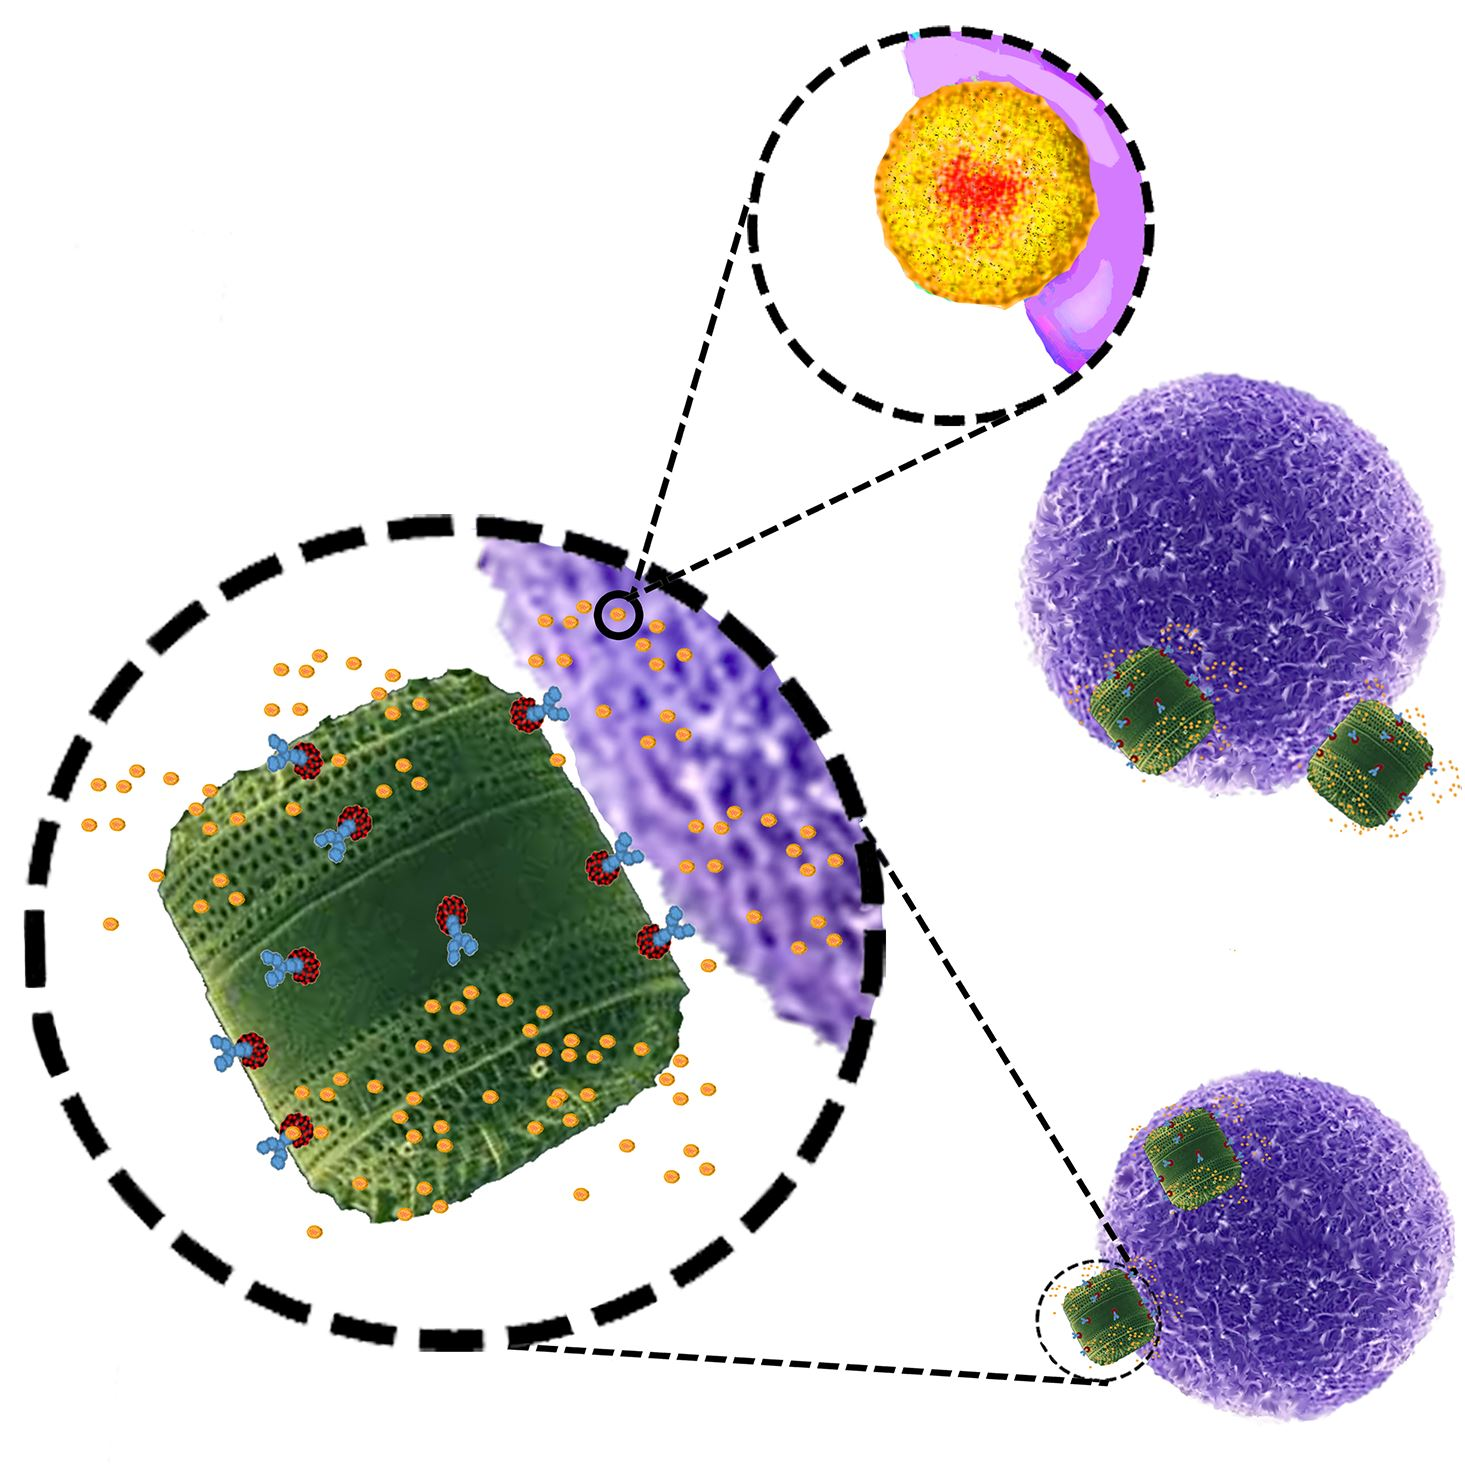 Imagem Algas-cancer-drogas Nature Communications-1